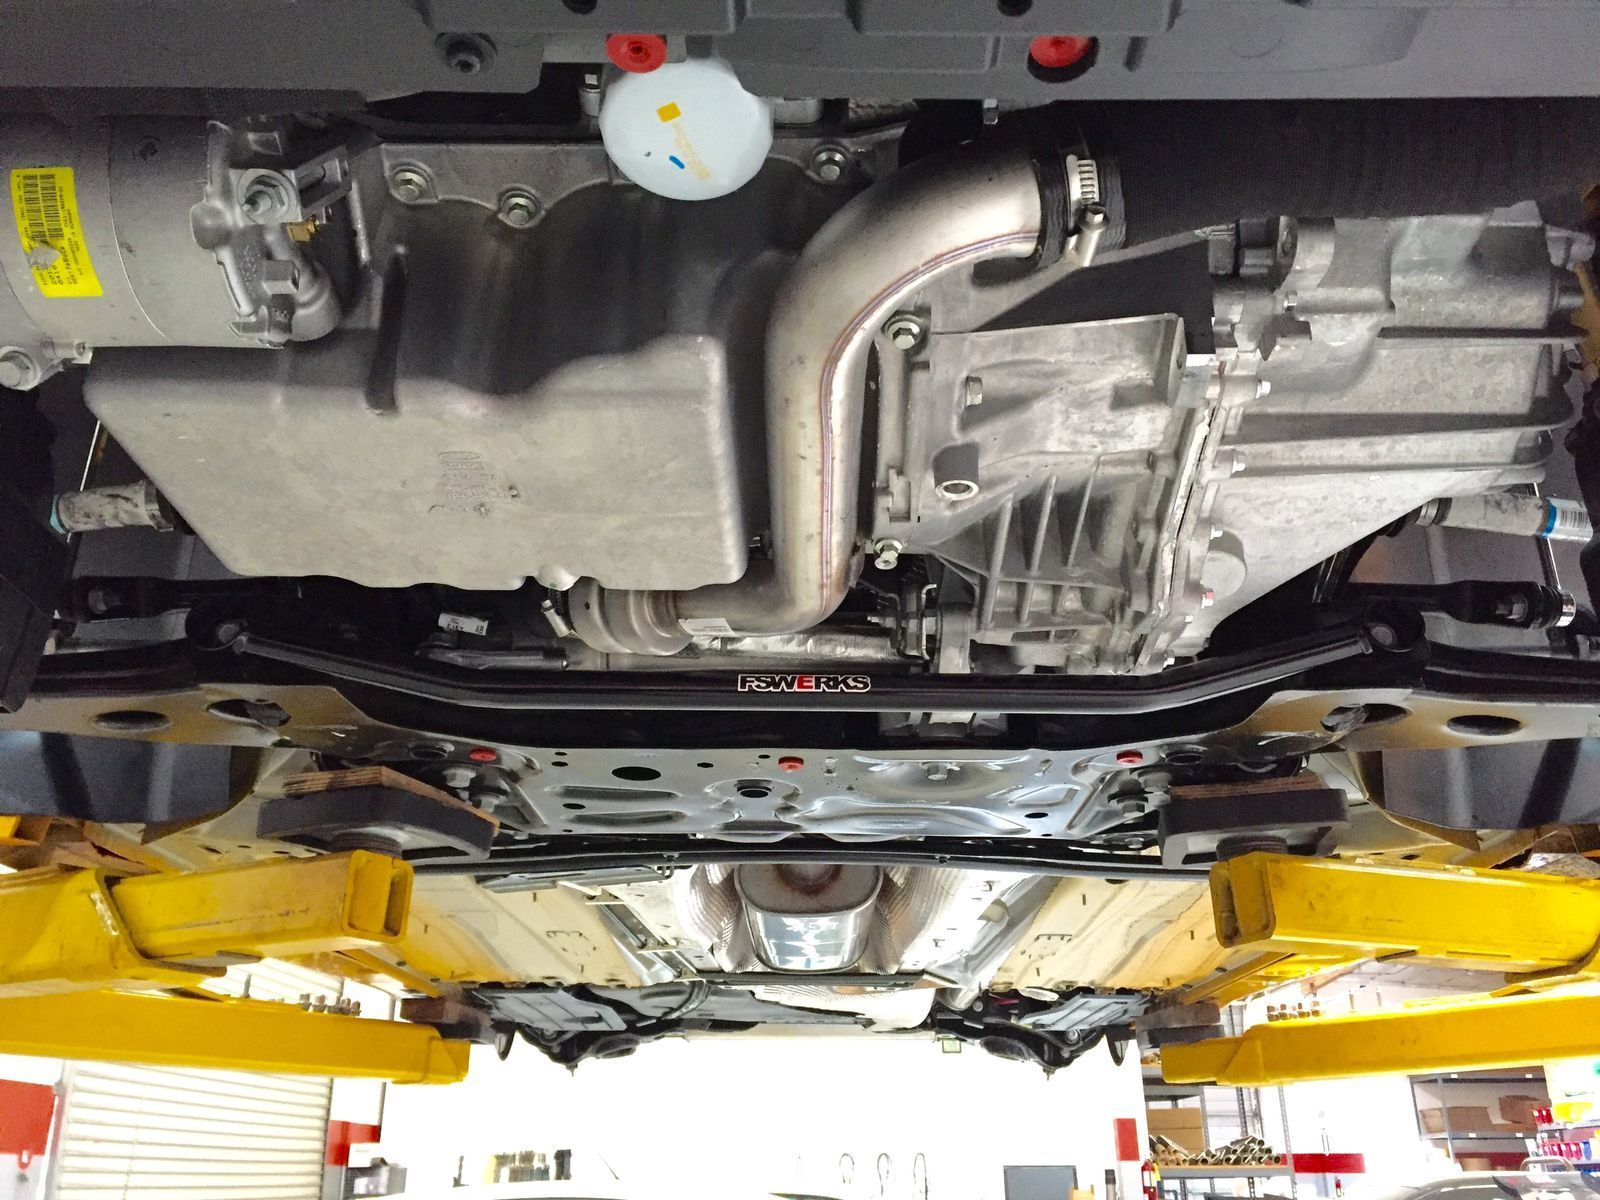 2015 Ford Focus ST | 2015 Focus ST by FSWerks - Undercarriage